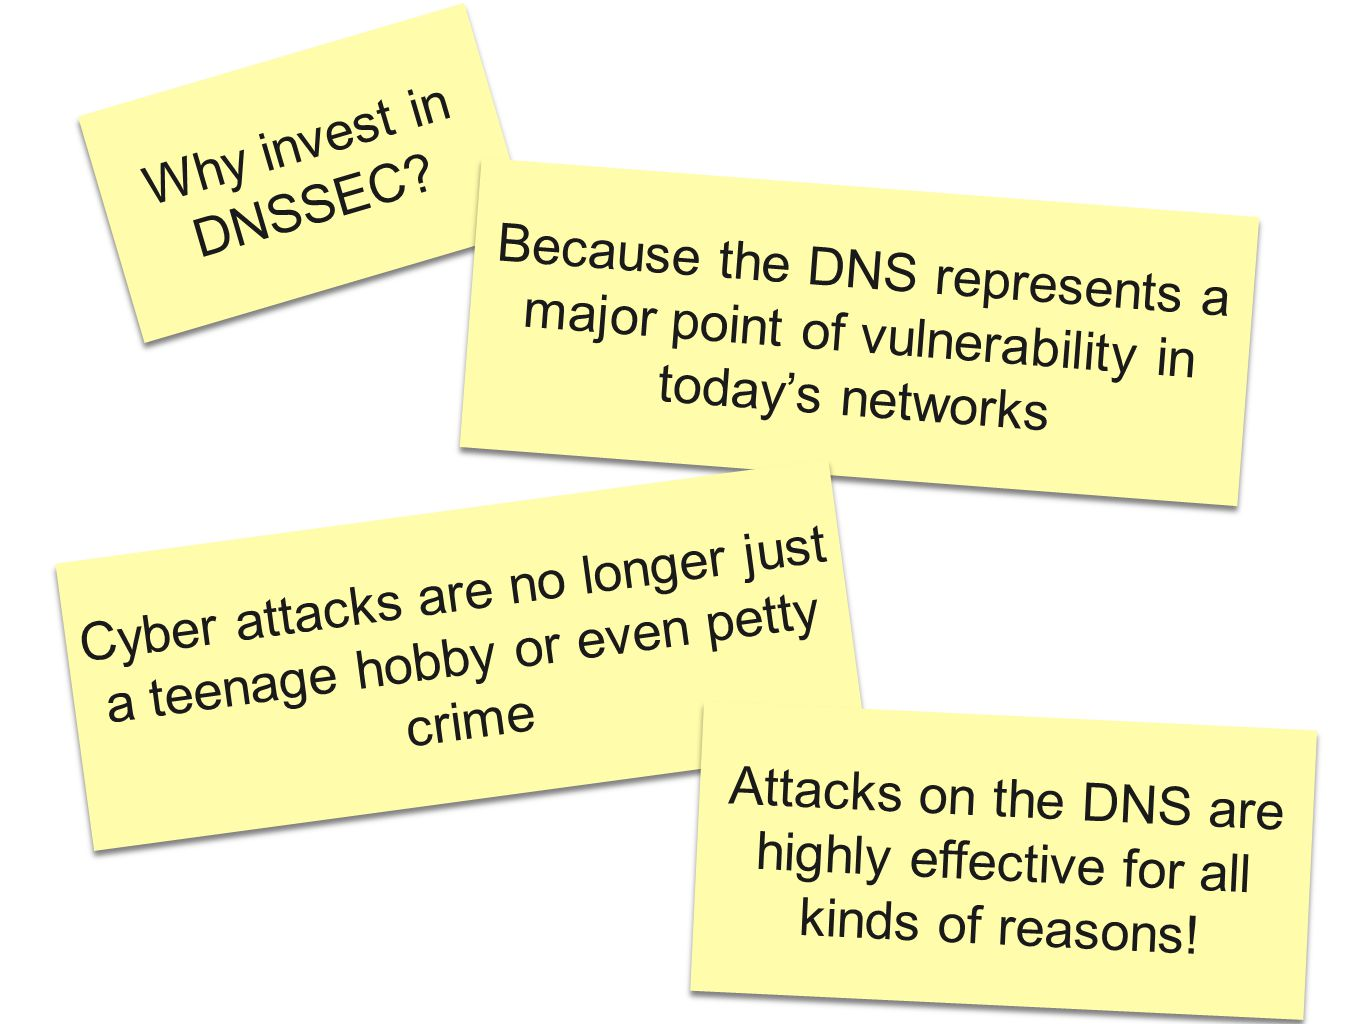 Why invest in DNSSEC.